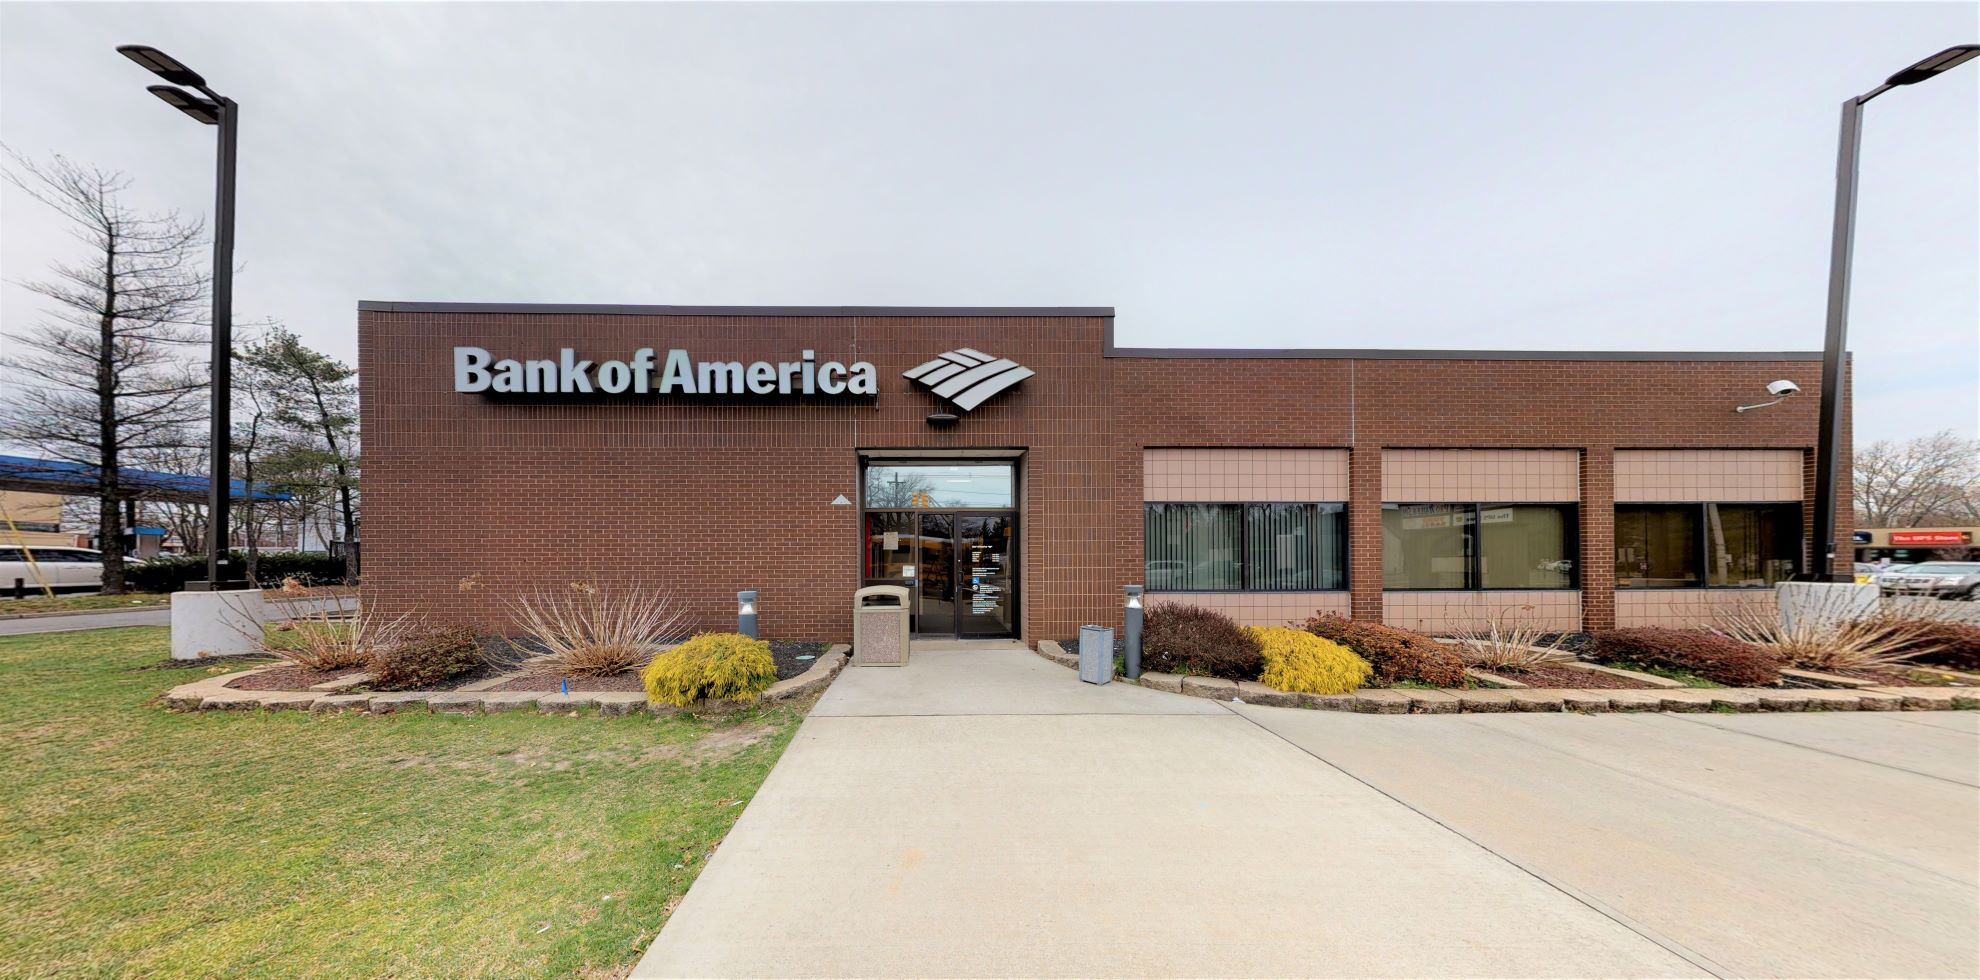 Bank of America financial center with drive-thru ATM | 1034 Saint Georges Ave, Rahway, NJ 07065